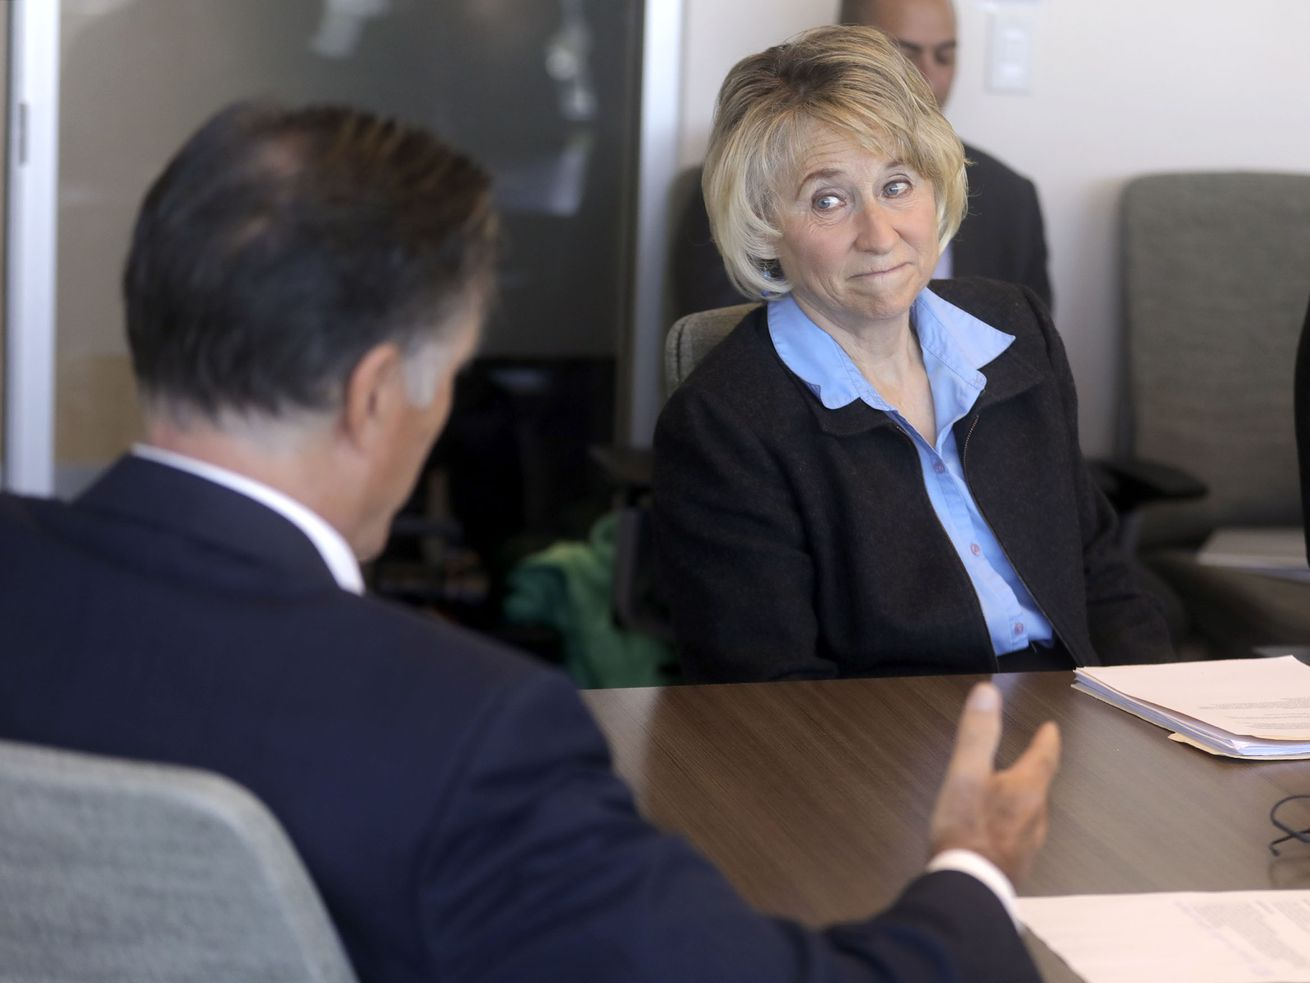 Rep. Susan Pulsipher, R-South Jordan, listens to Sen. Mitt Romney, R-Utah, talk about anti-vaping efforts during a roundtable discussion at Primary Children's Hospital in Salt Lake City on Thursday, Oct. 10, 2019.